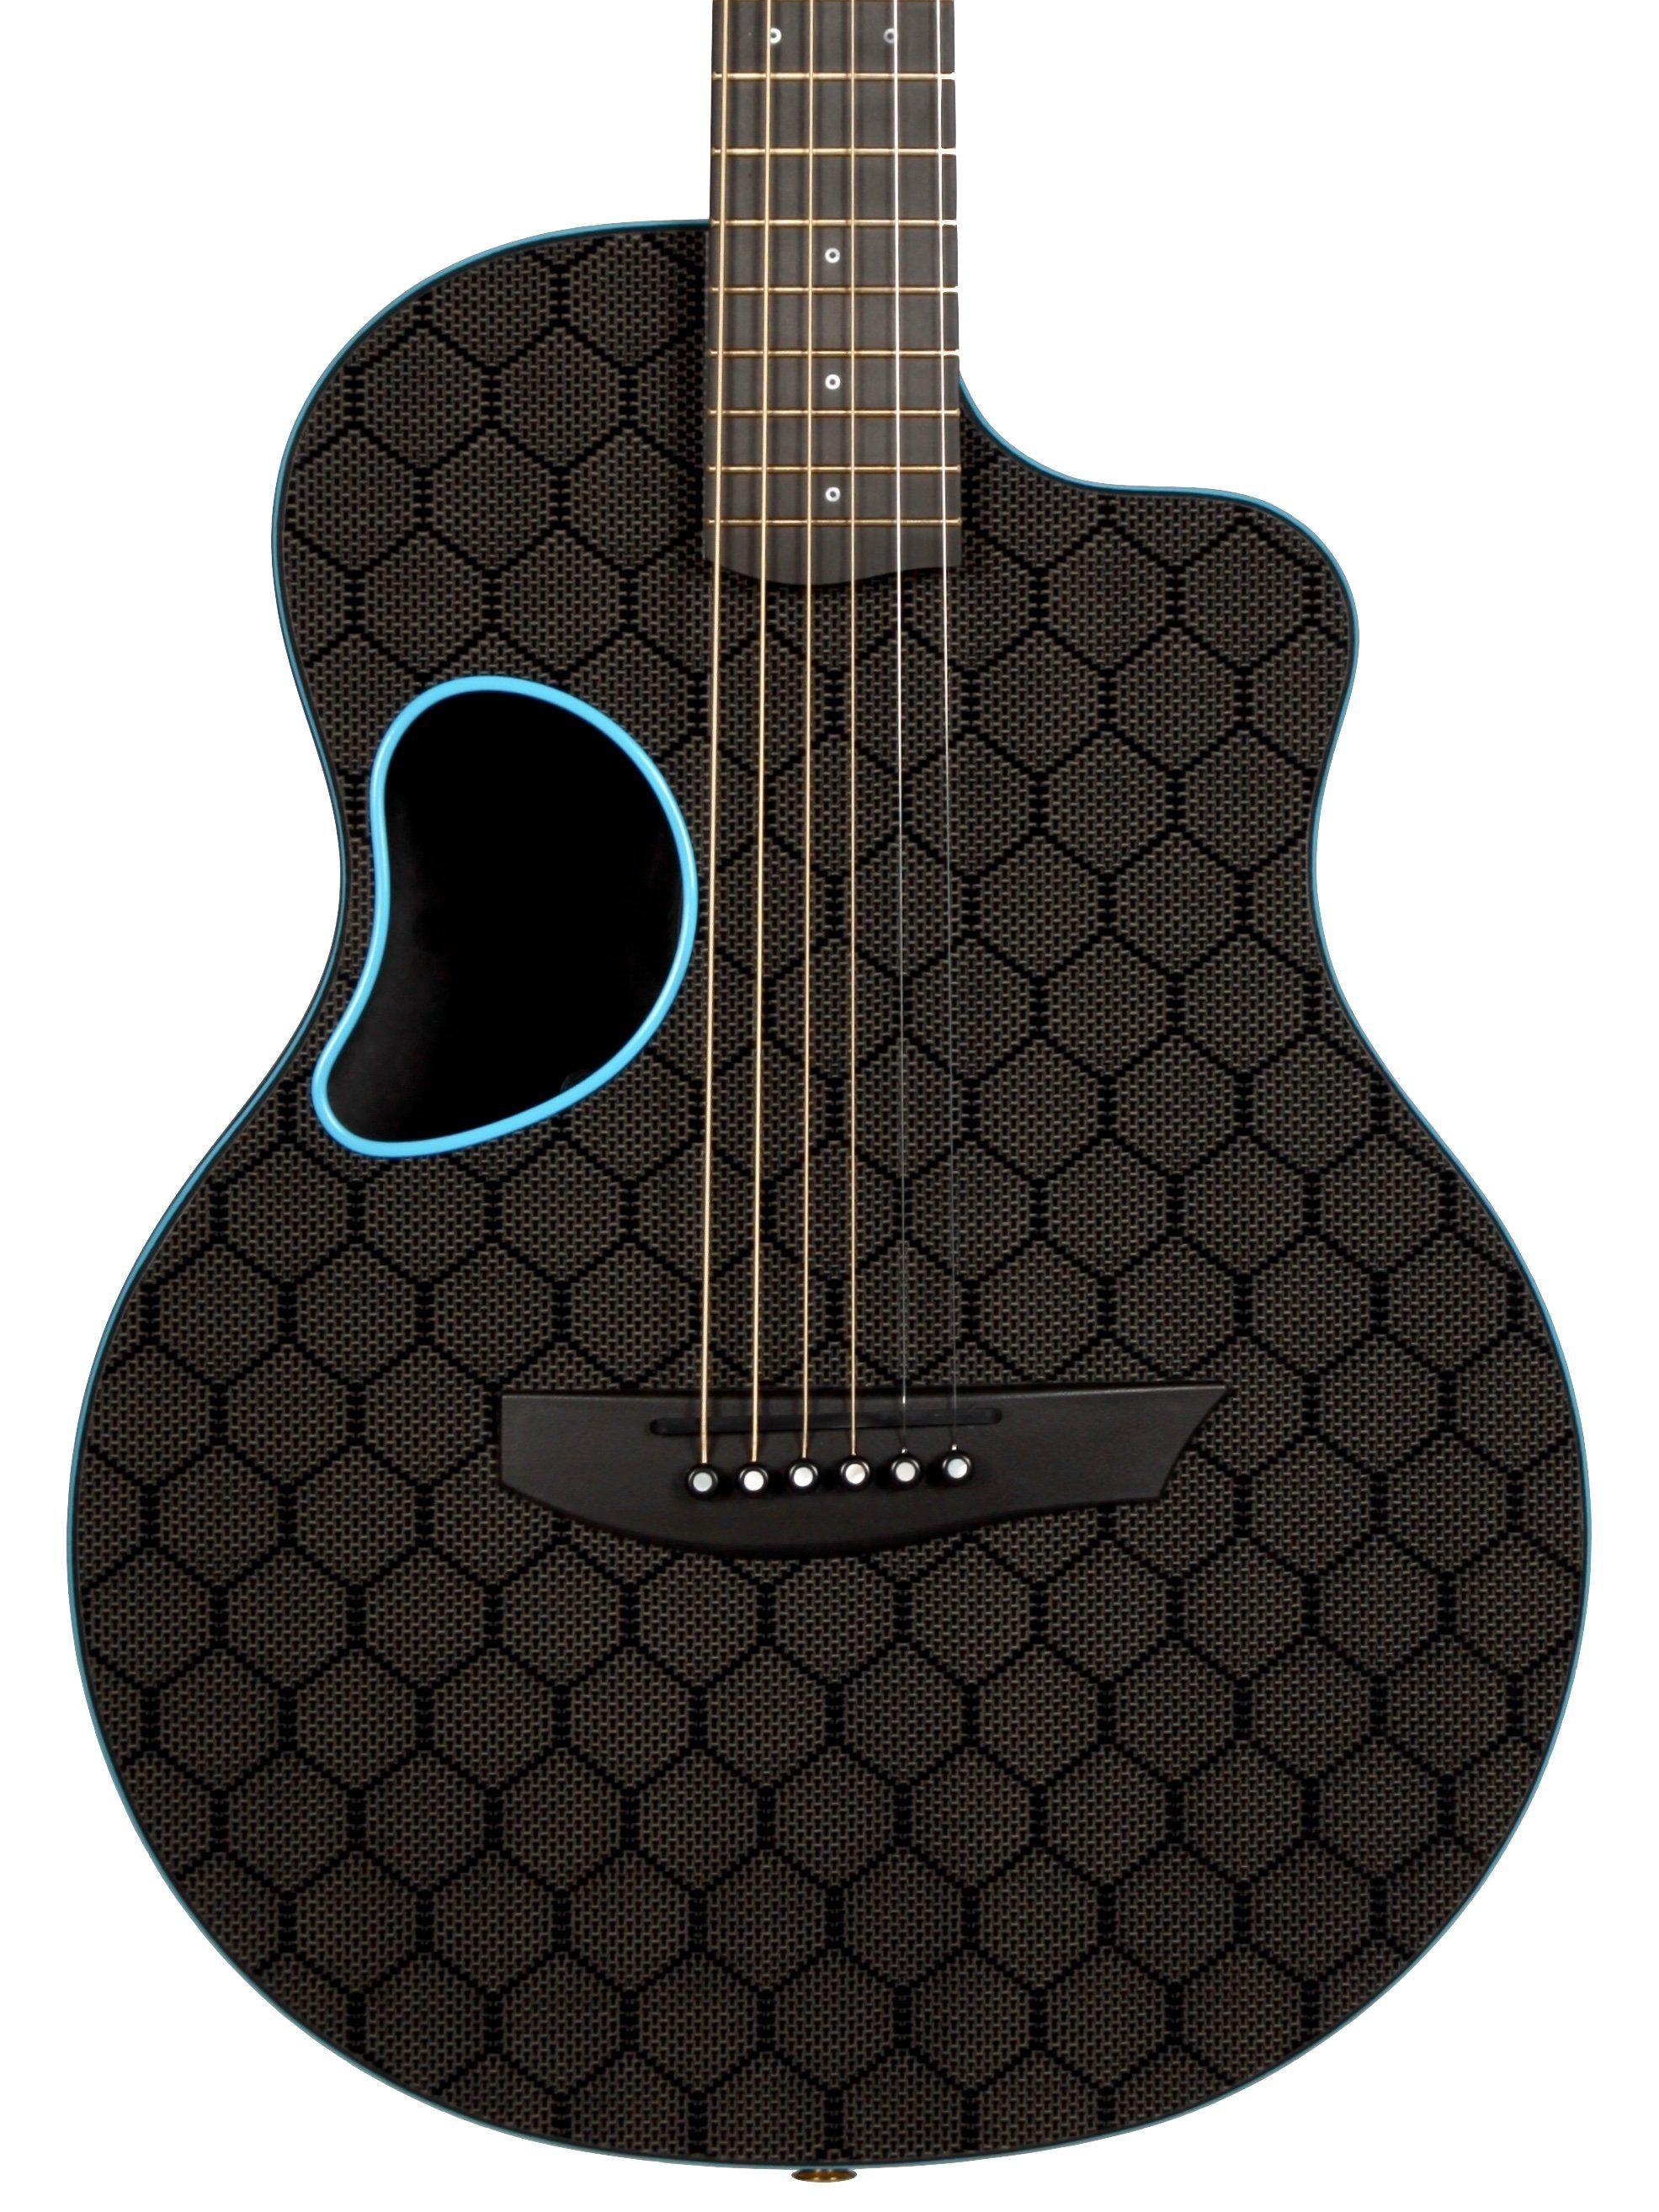 McPherson Touring Carbon Fiber Blue Honeycomb with Gold Hardware #10640 - McPherson Guitars - Heartbreaker Guitars